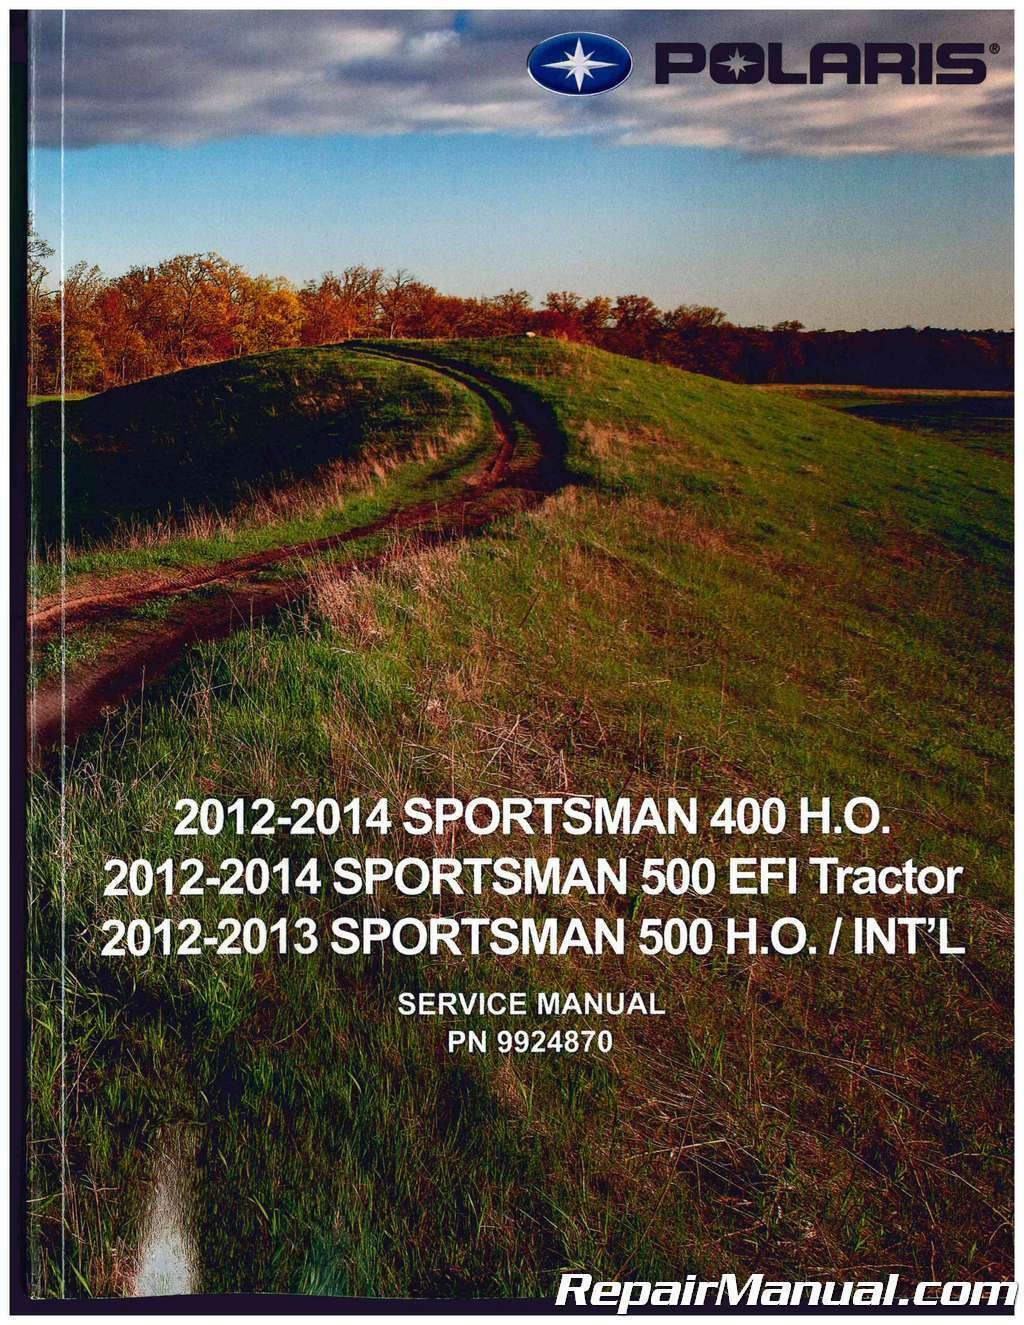 2012 – 2014 Polaris Sportsman 400 500 ATV Service Manual : 9924870 1 of  1Only 5 available See More